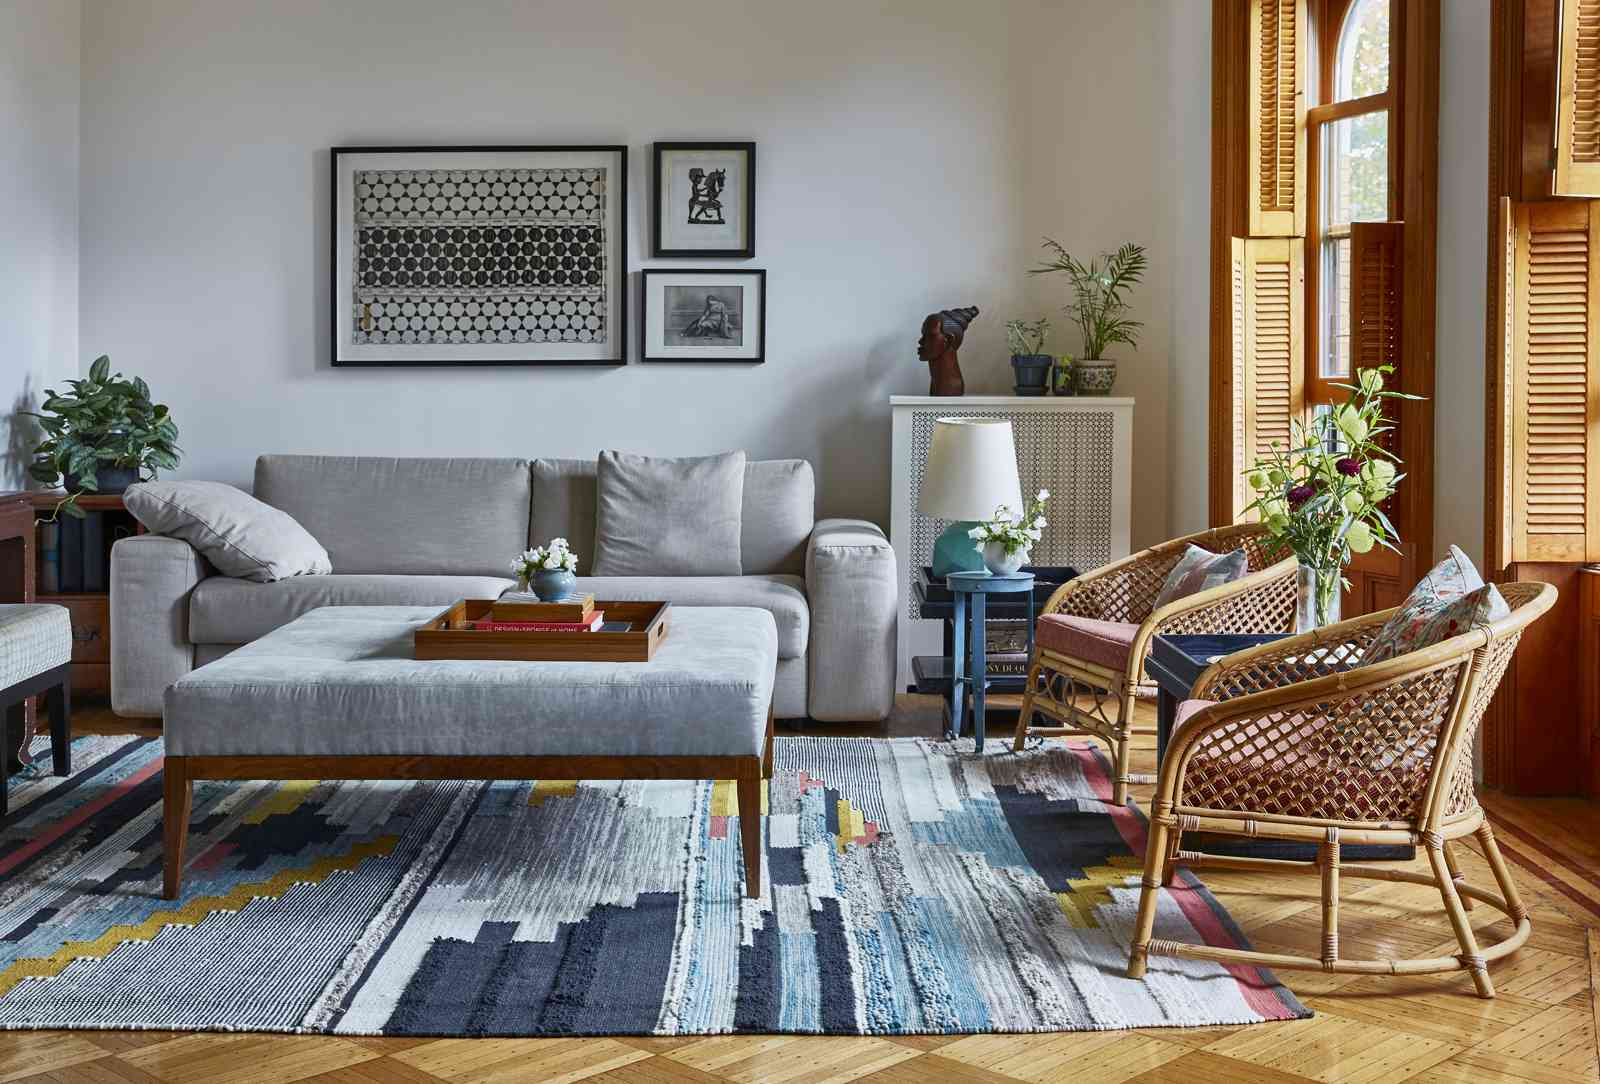 White living room and colorful rug